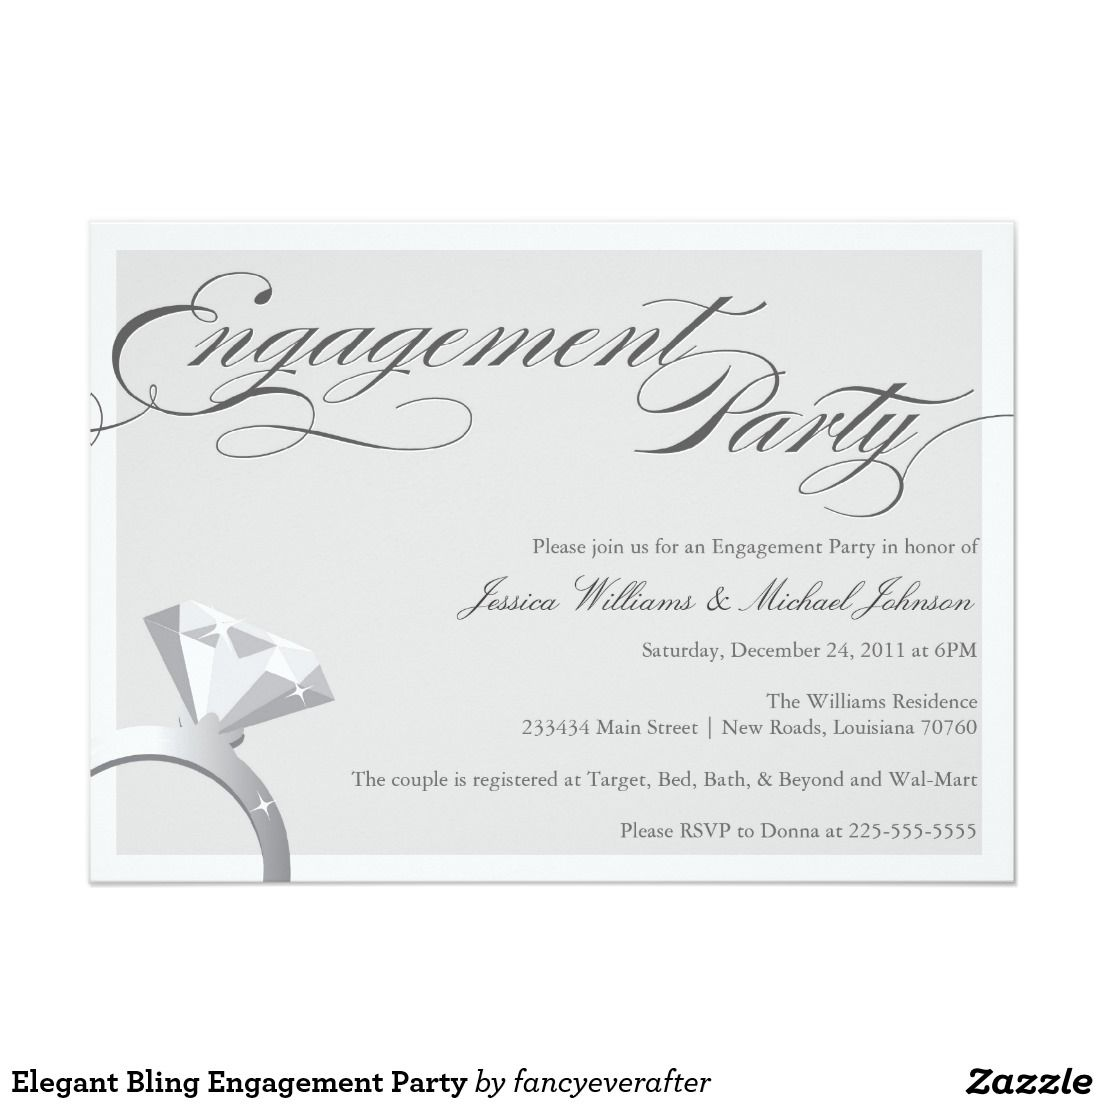 Elegant Bling Engagement Party Card | Wedding :Engagement Party ...